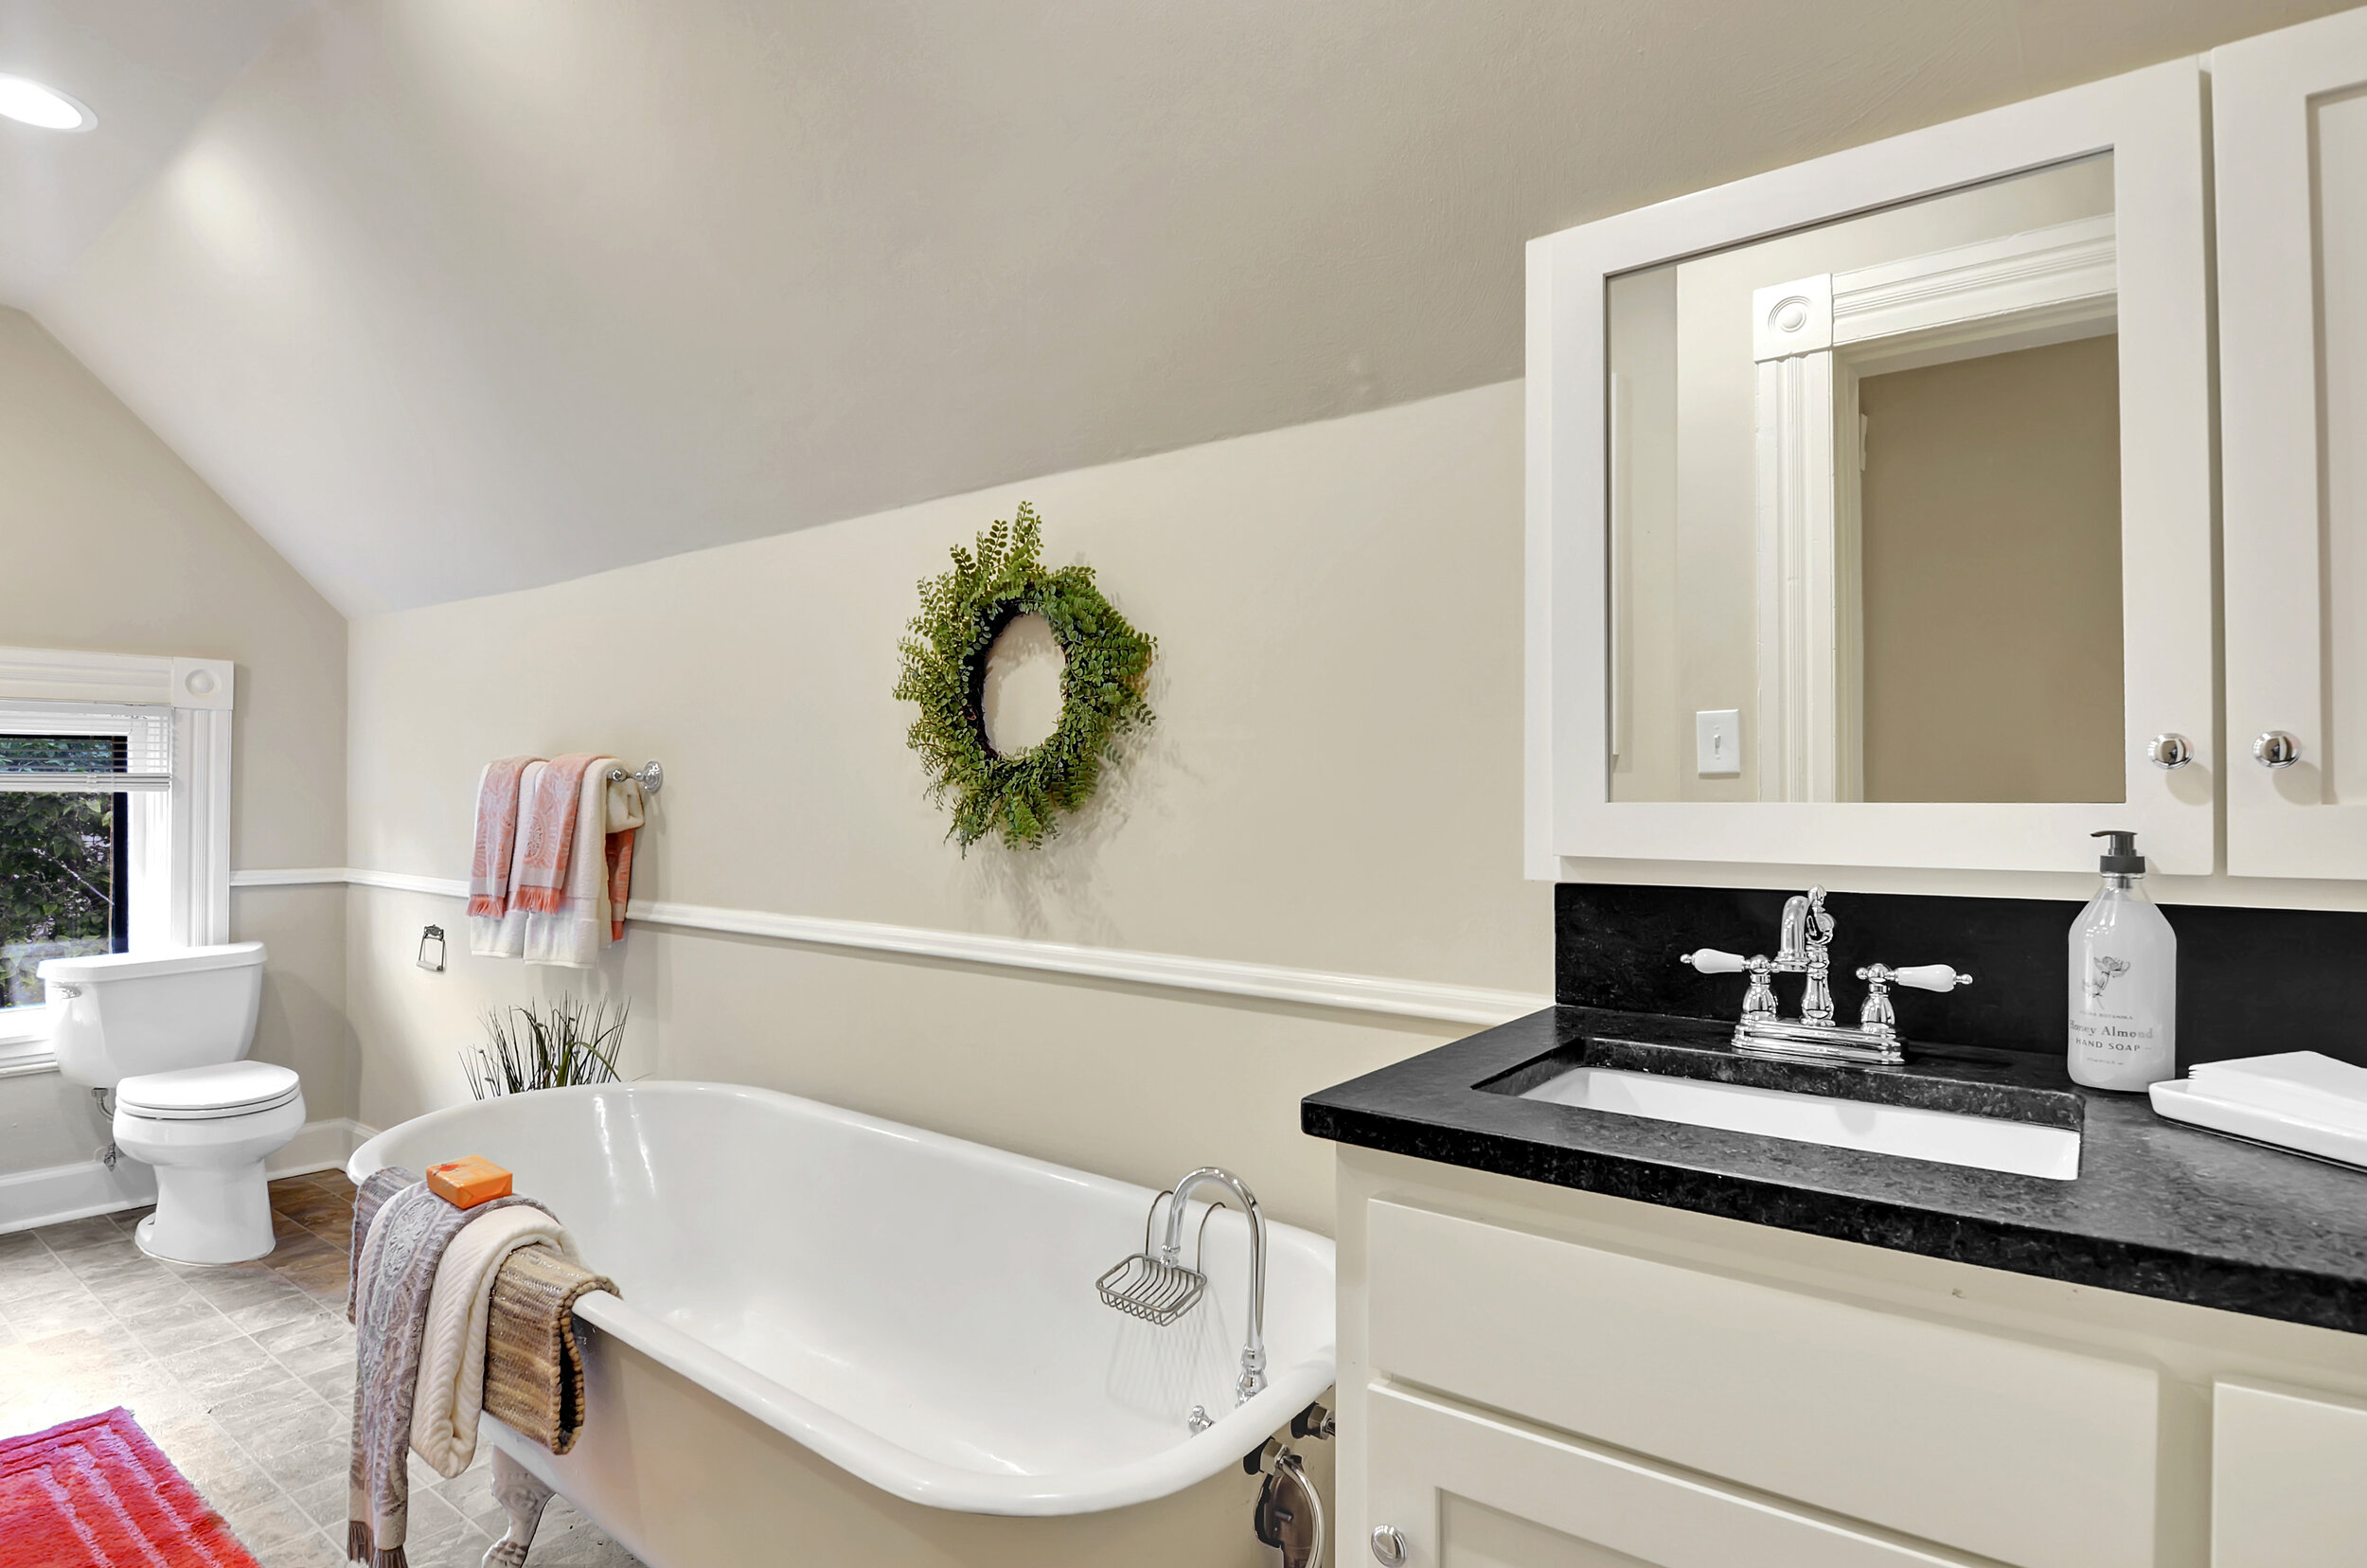 With both a shower and the original 6 foot clawfoot tub, this room has all you need.